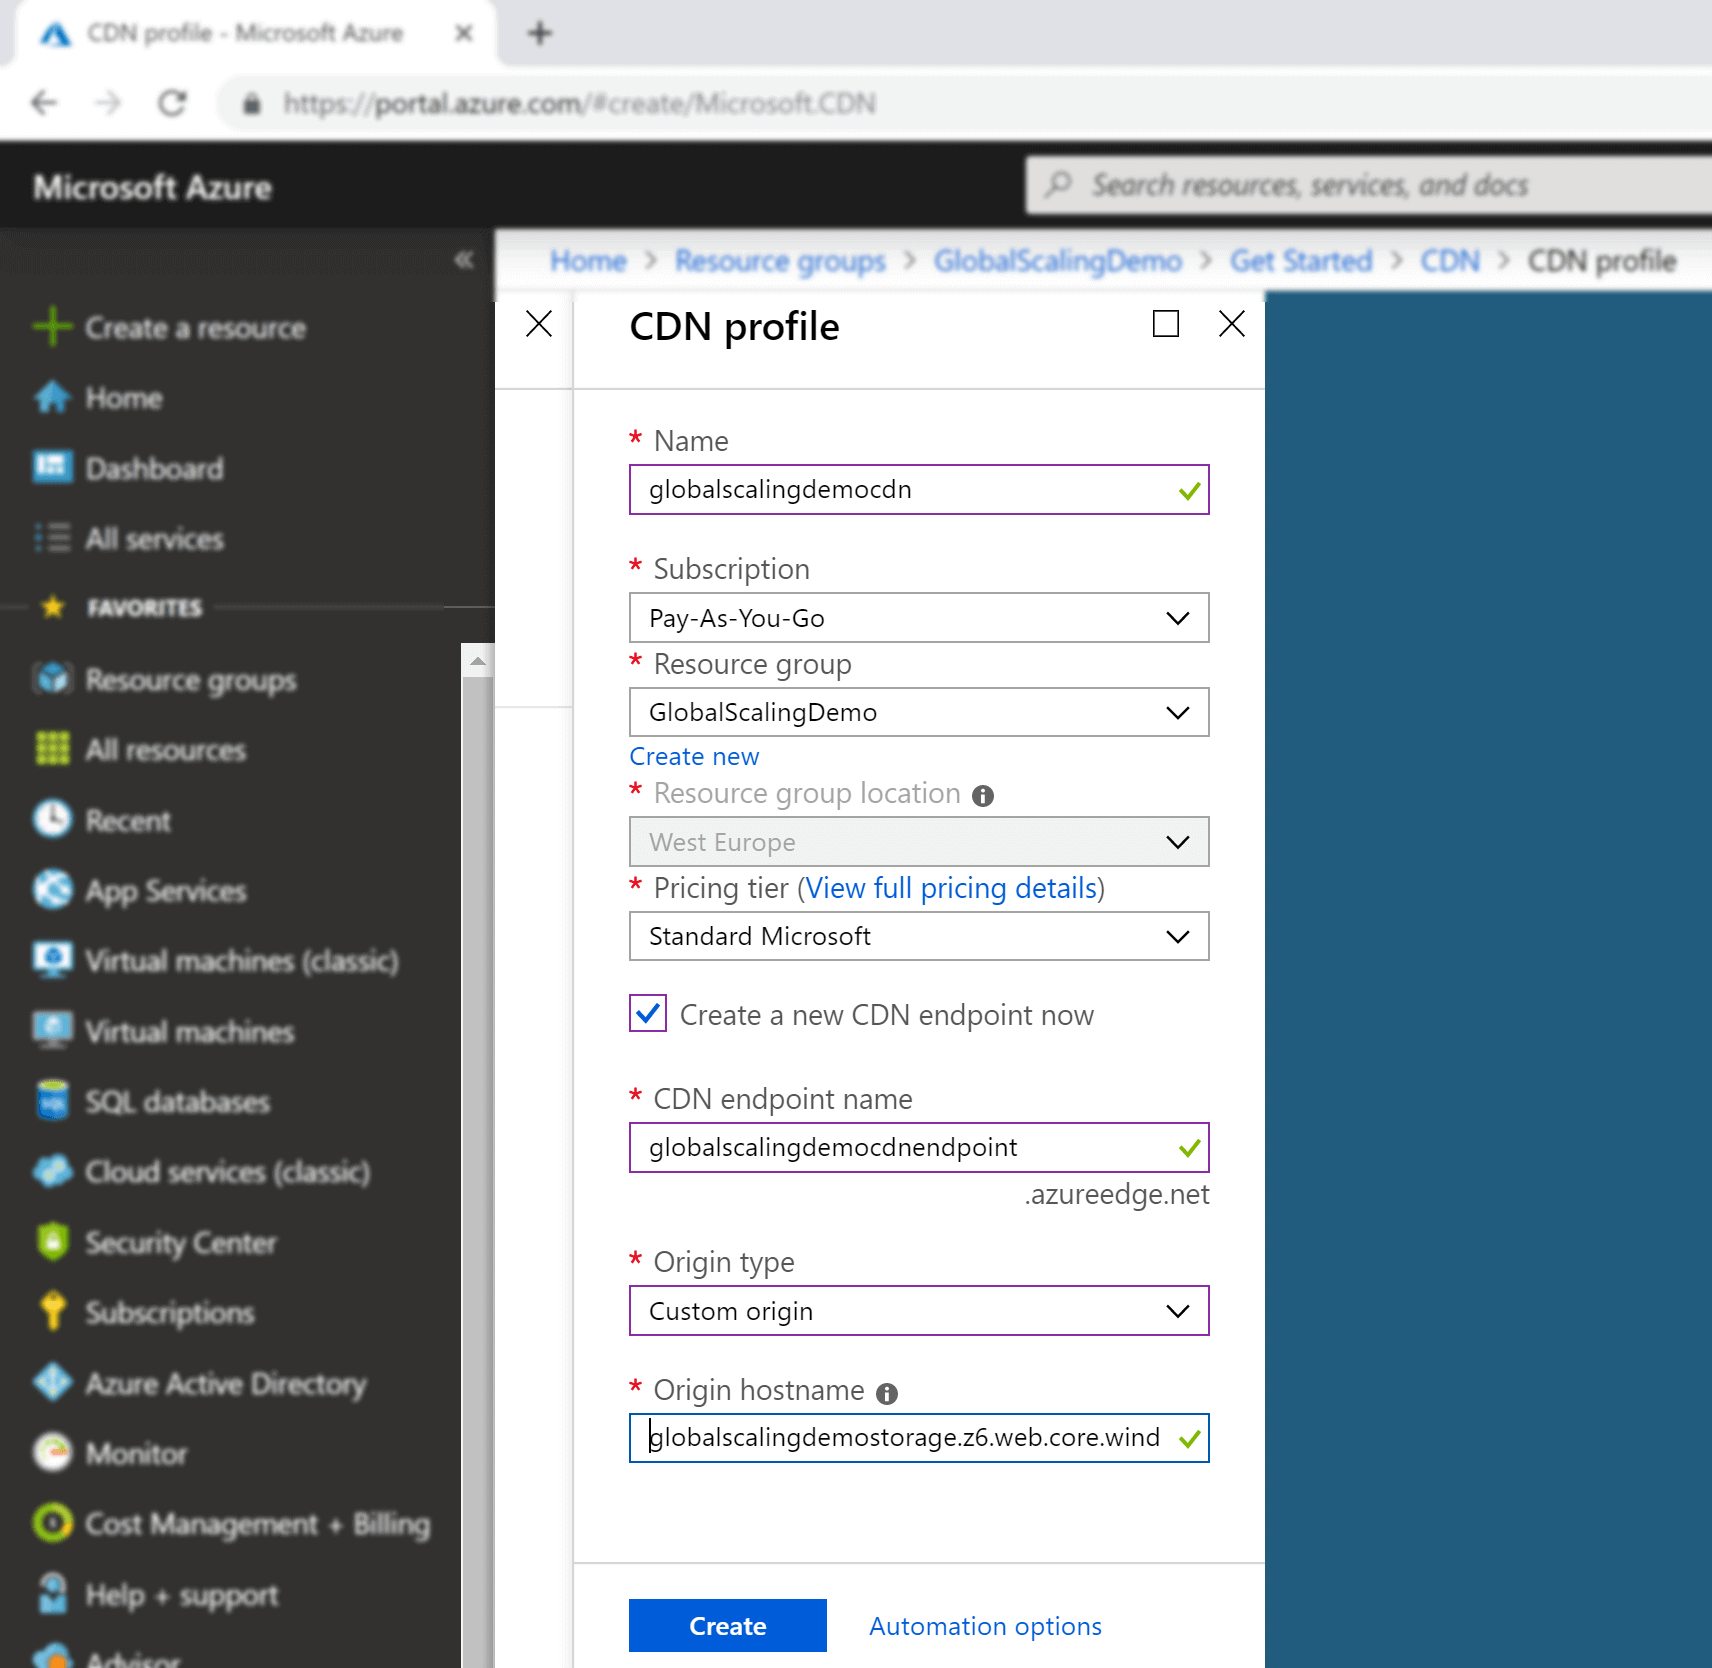 image showing azure CDN creation